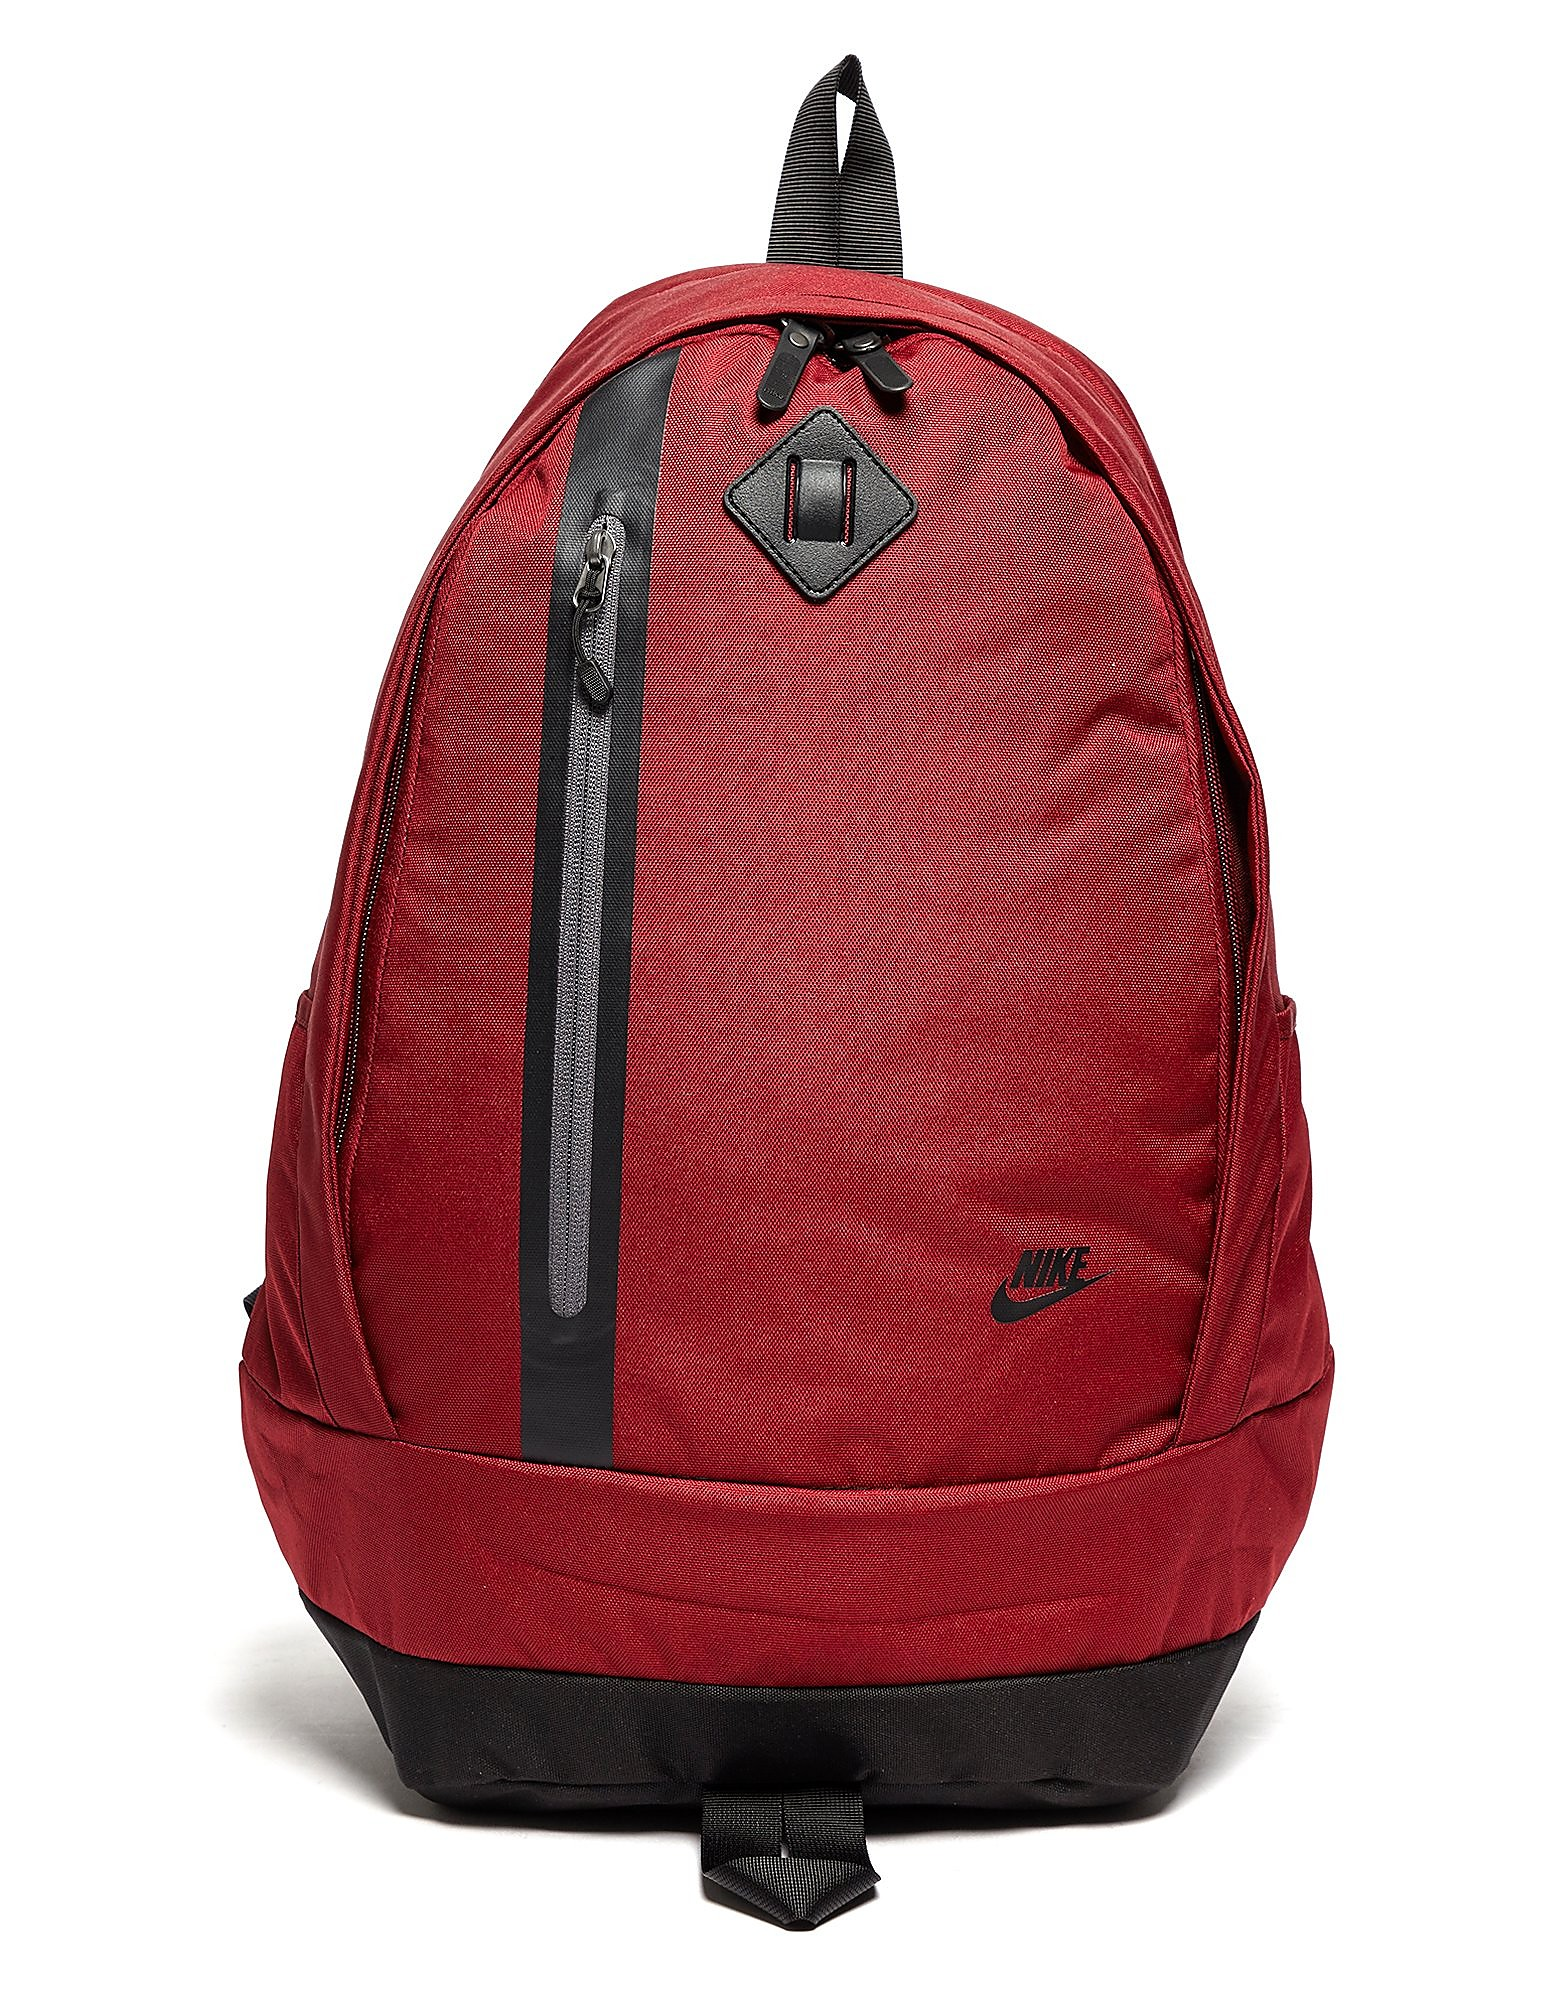 Nike Soleday Backpack